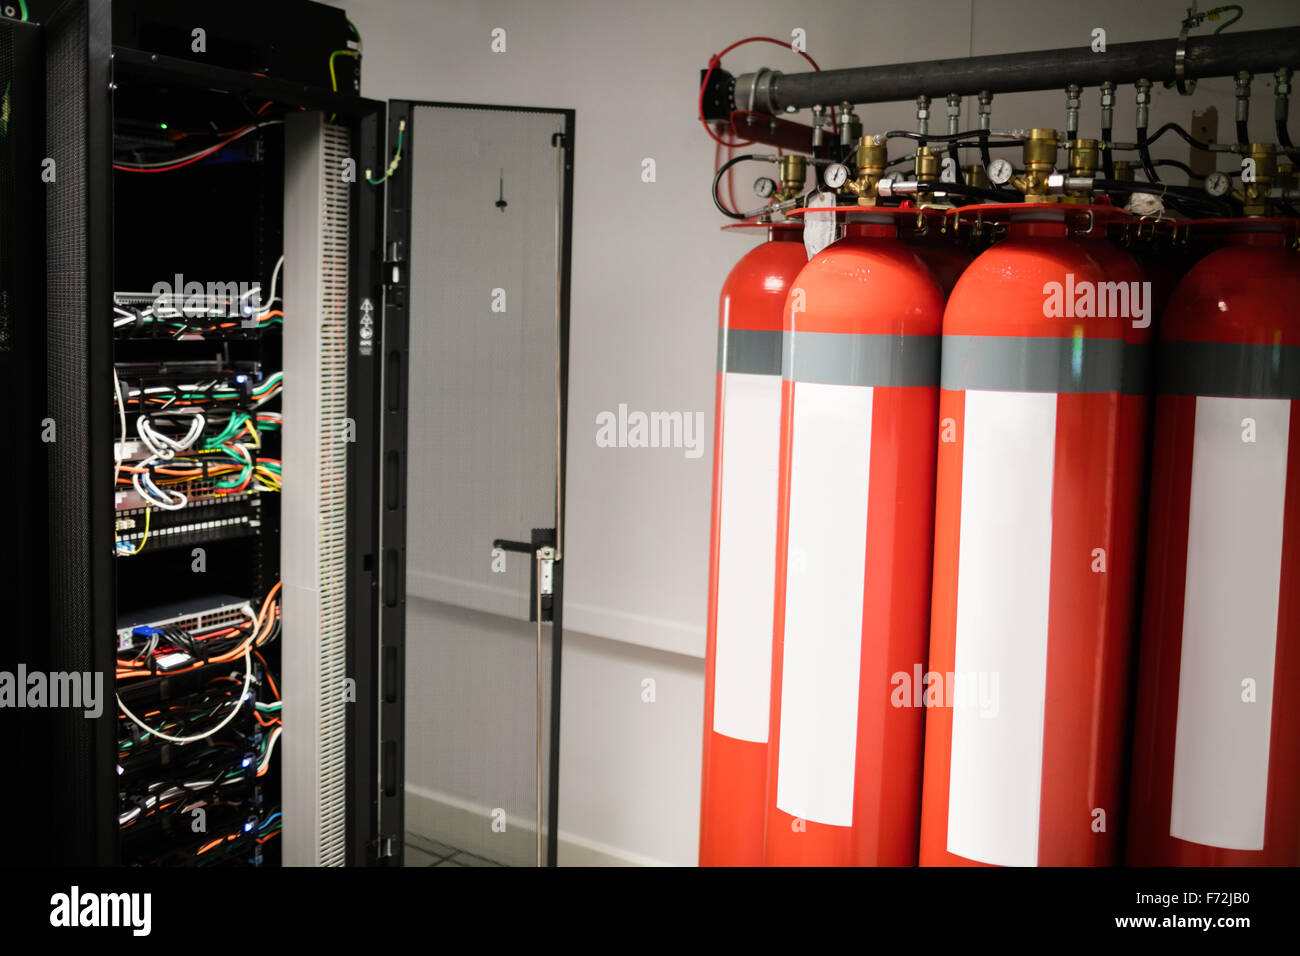 Fire extinguishers in server room - Stock Image